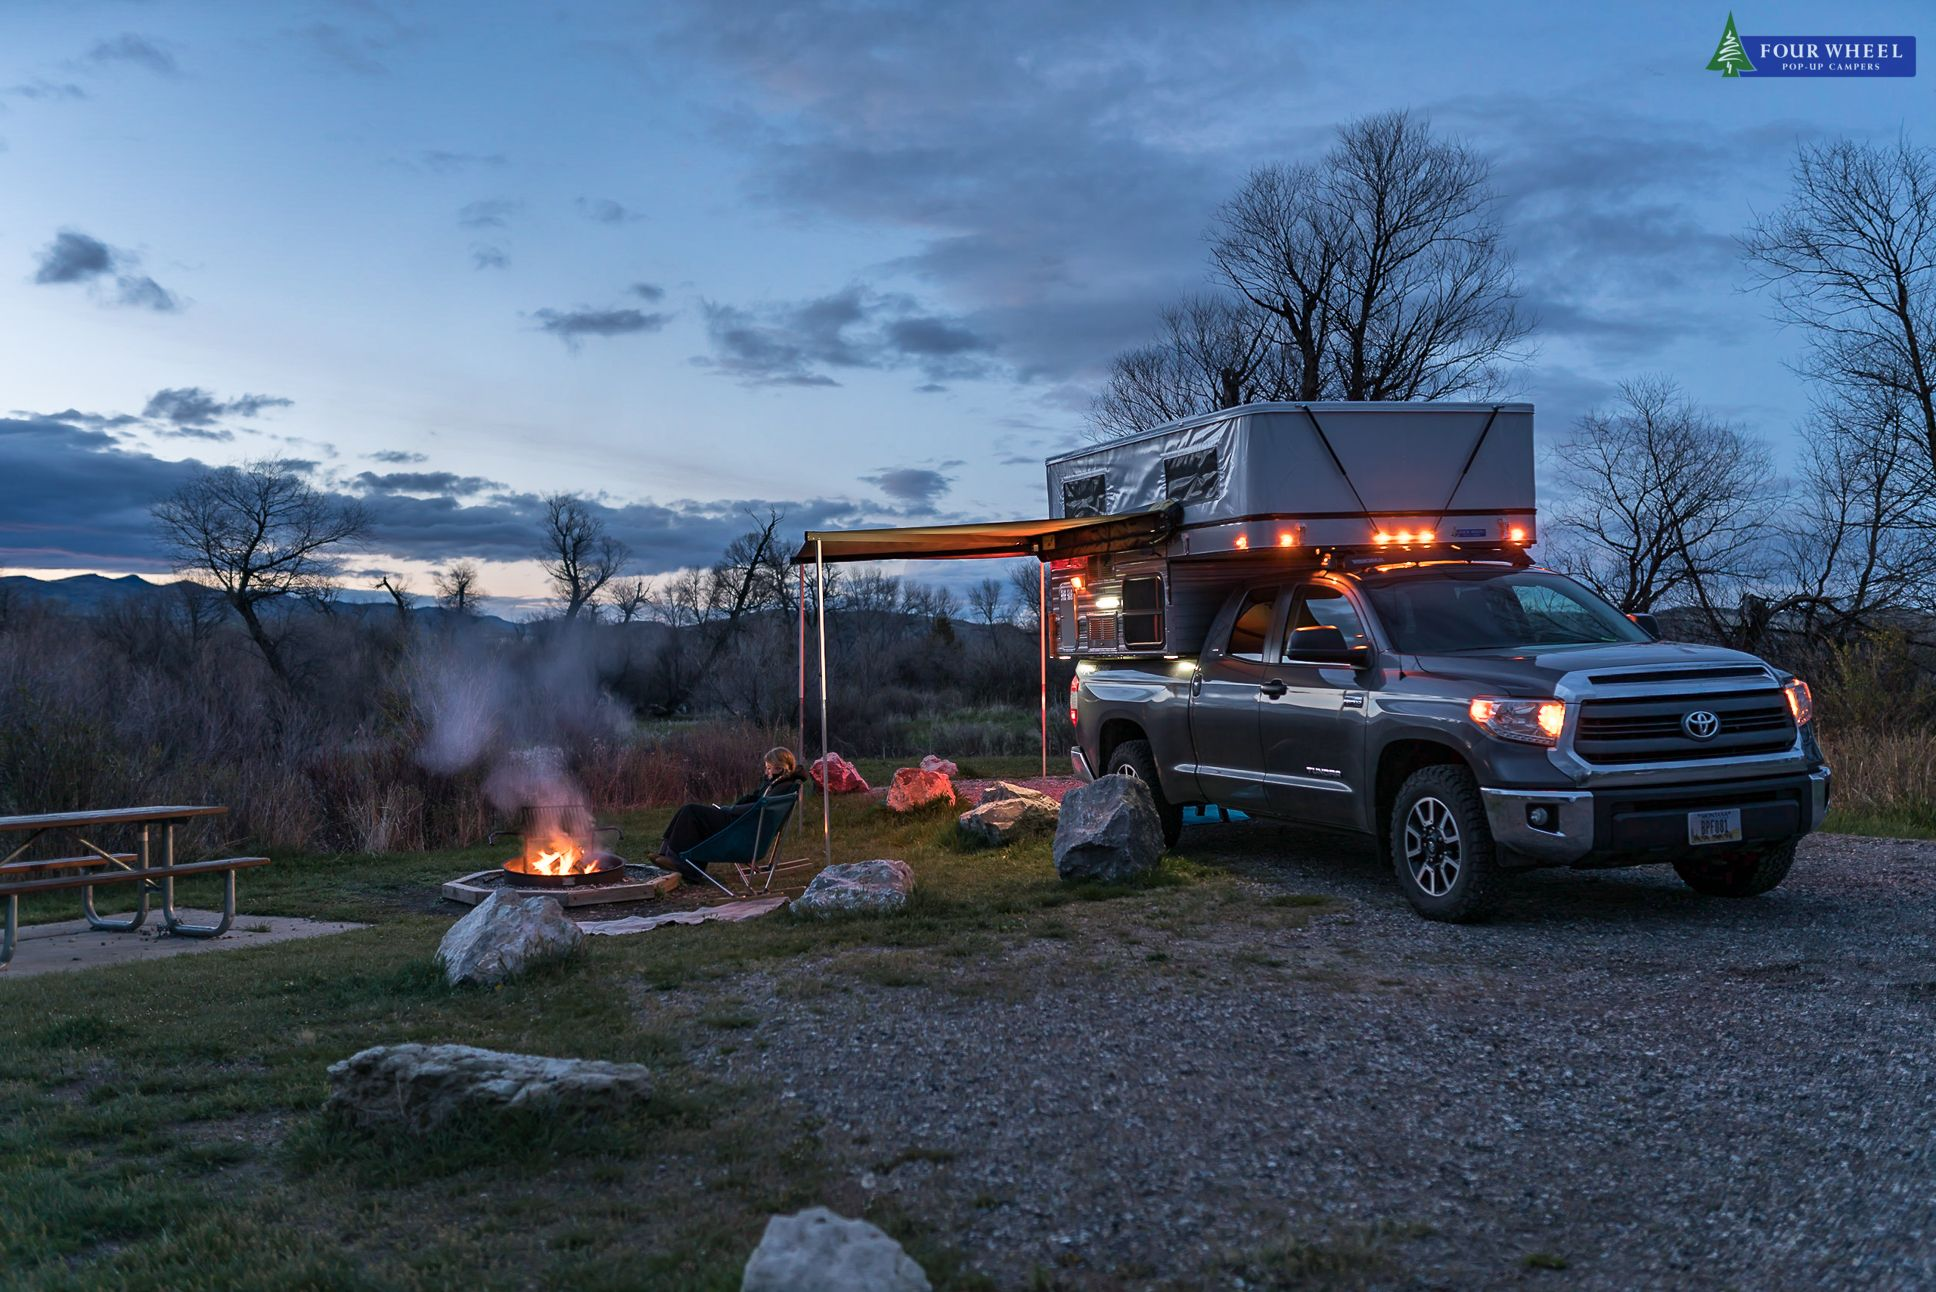 Camping In My Four Wheel Camper Popitlikeitshot Tundra Toyota